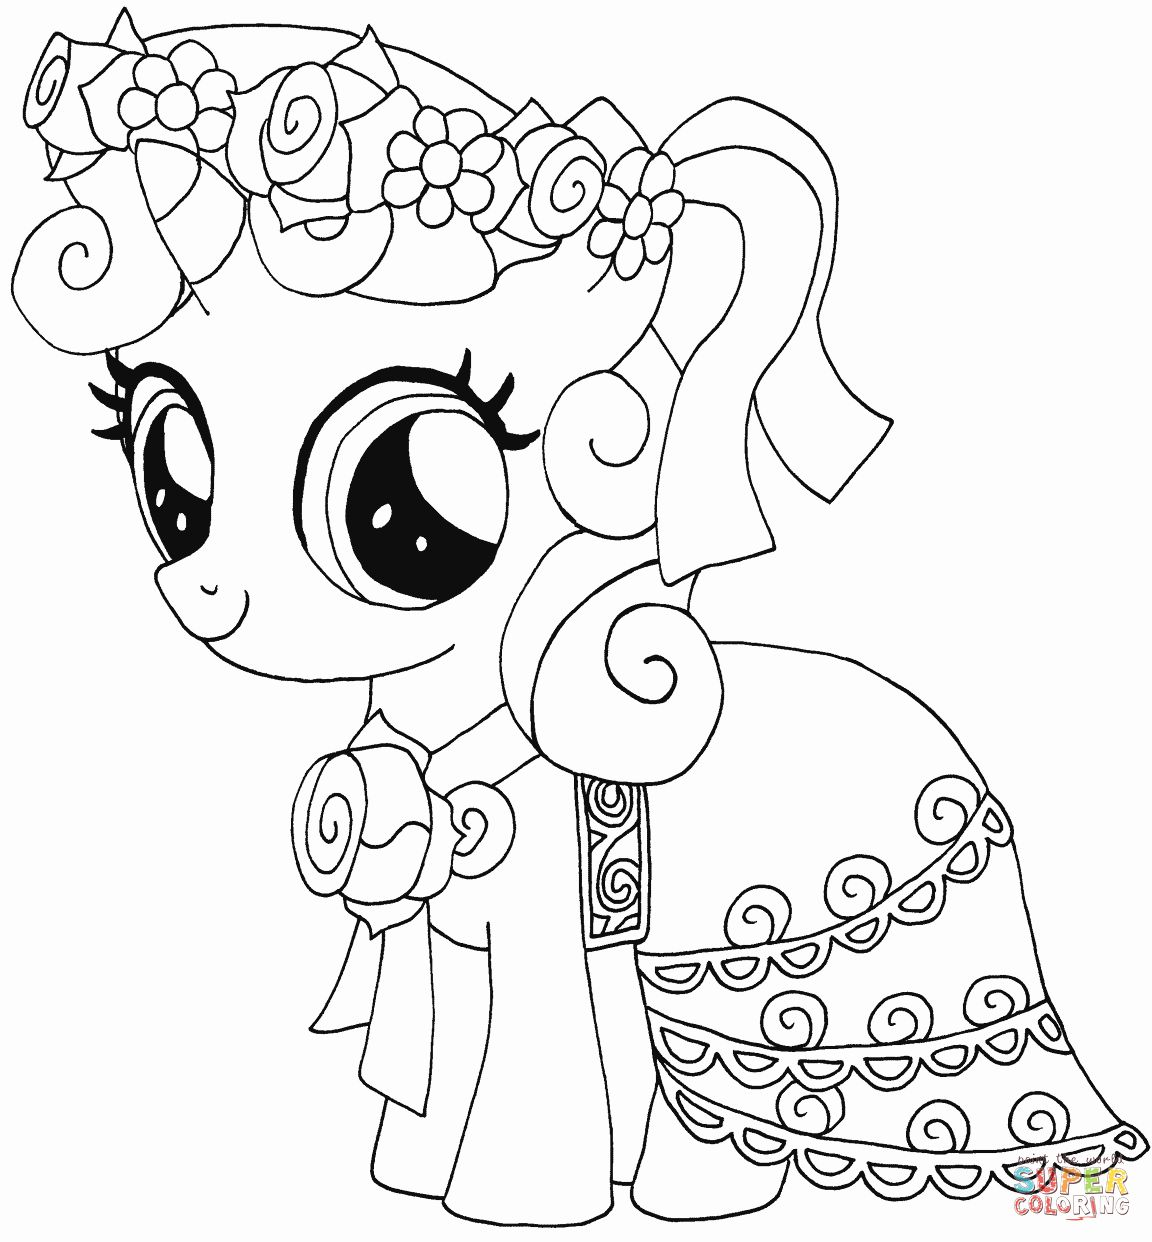 Rainbow Heart Coloring Page Fresh My Little Pony Coloring Pages In